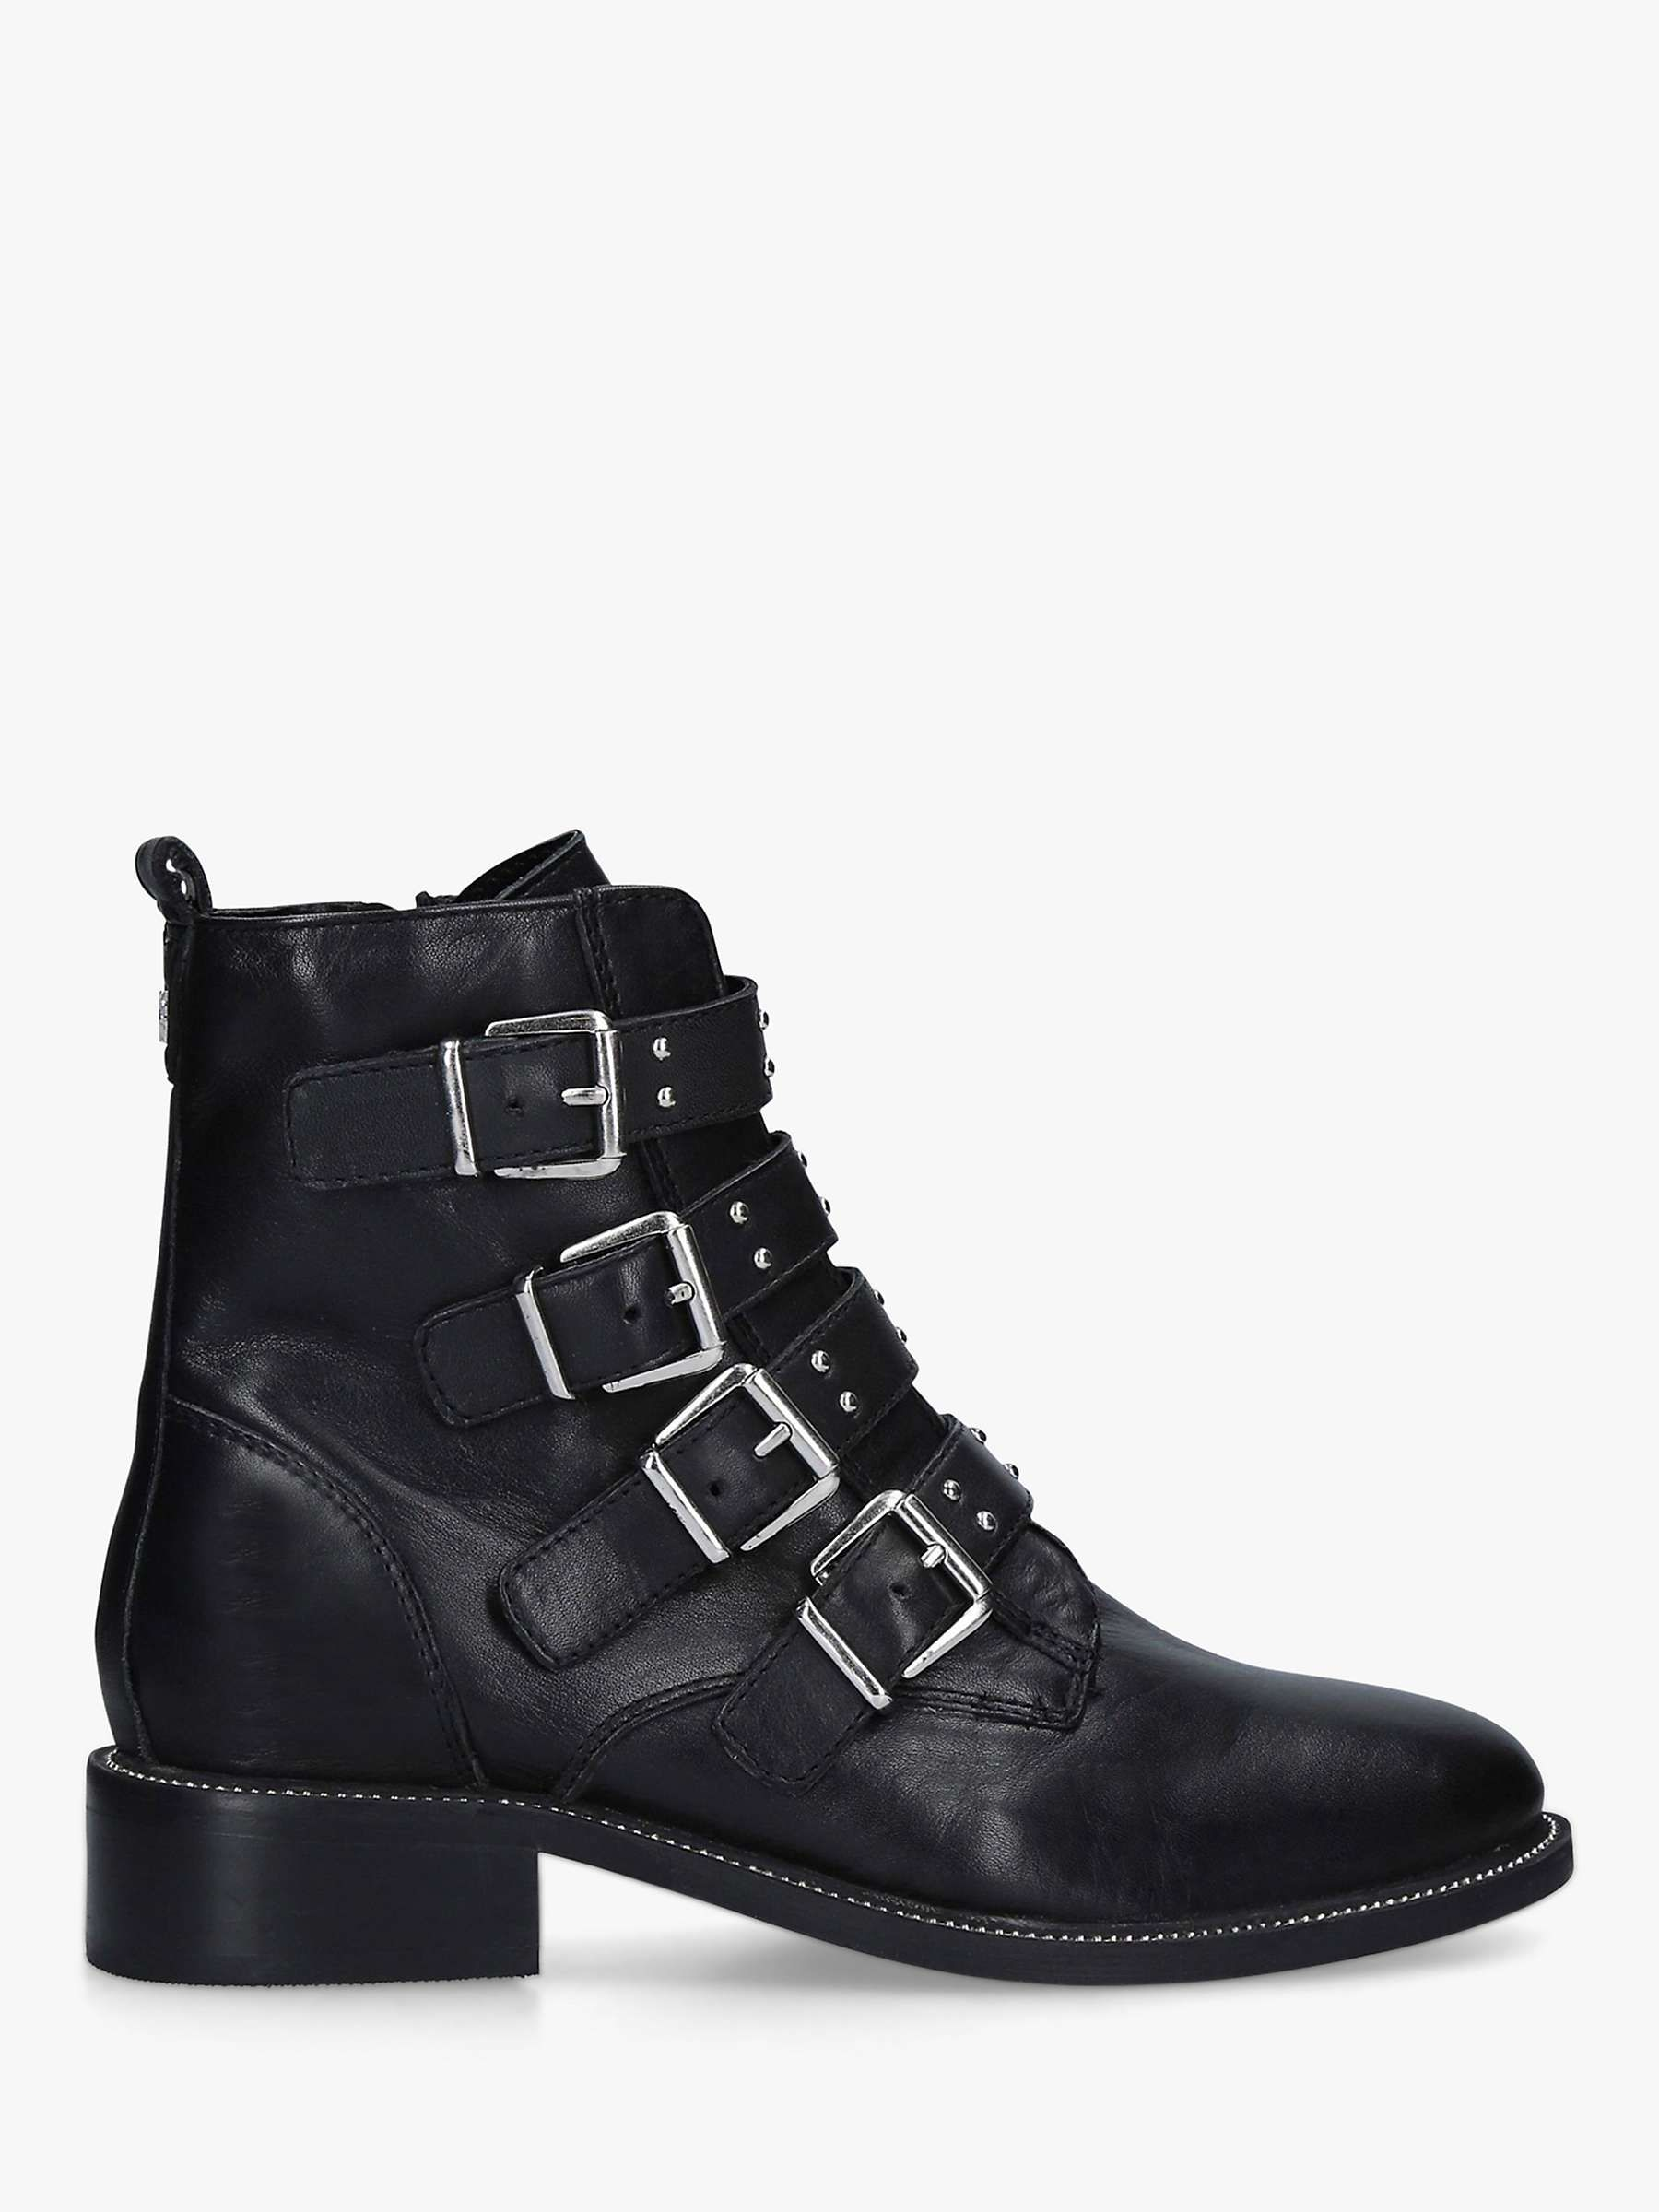 31 black ankle boots best ankle boots from a Fashion Editor